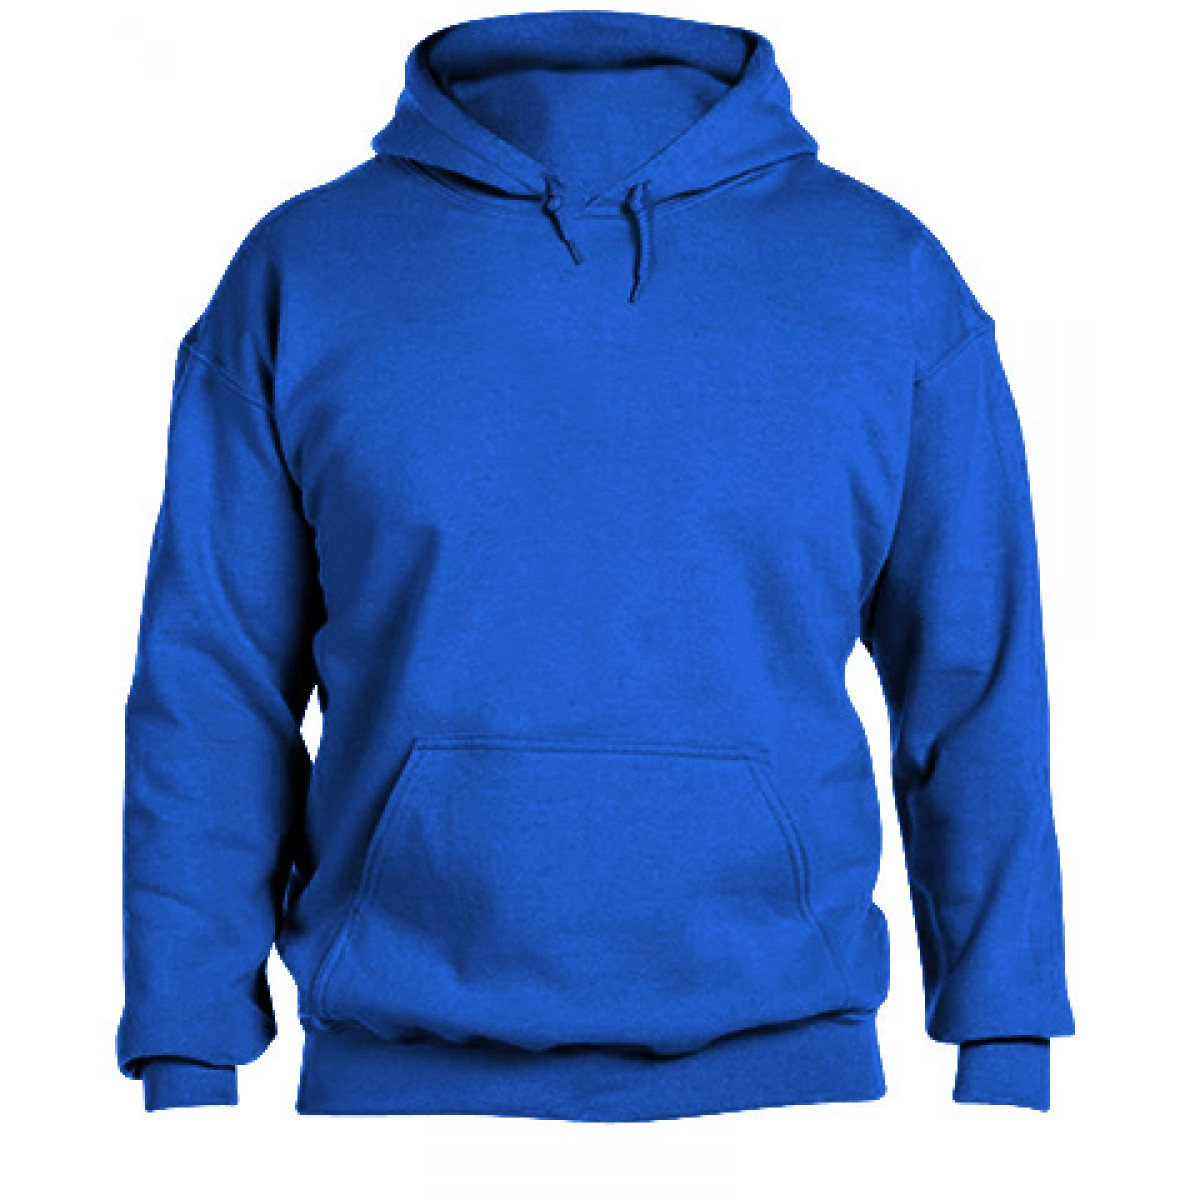 Hooded Sweatshirt 50/50 Heavy Blend-M